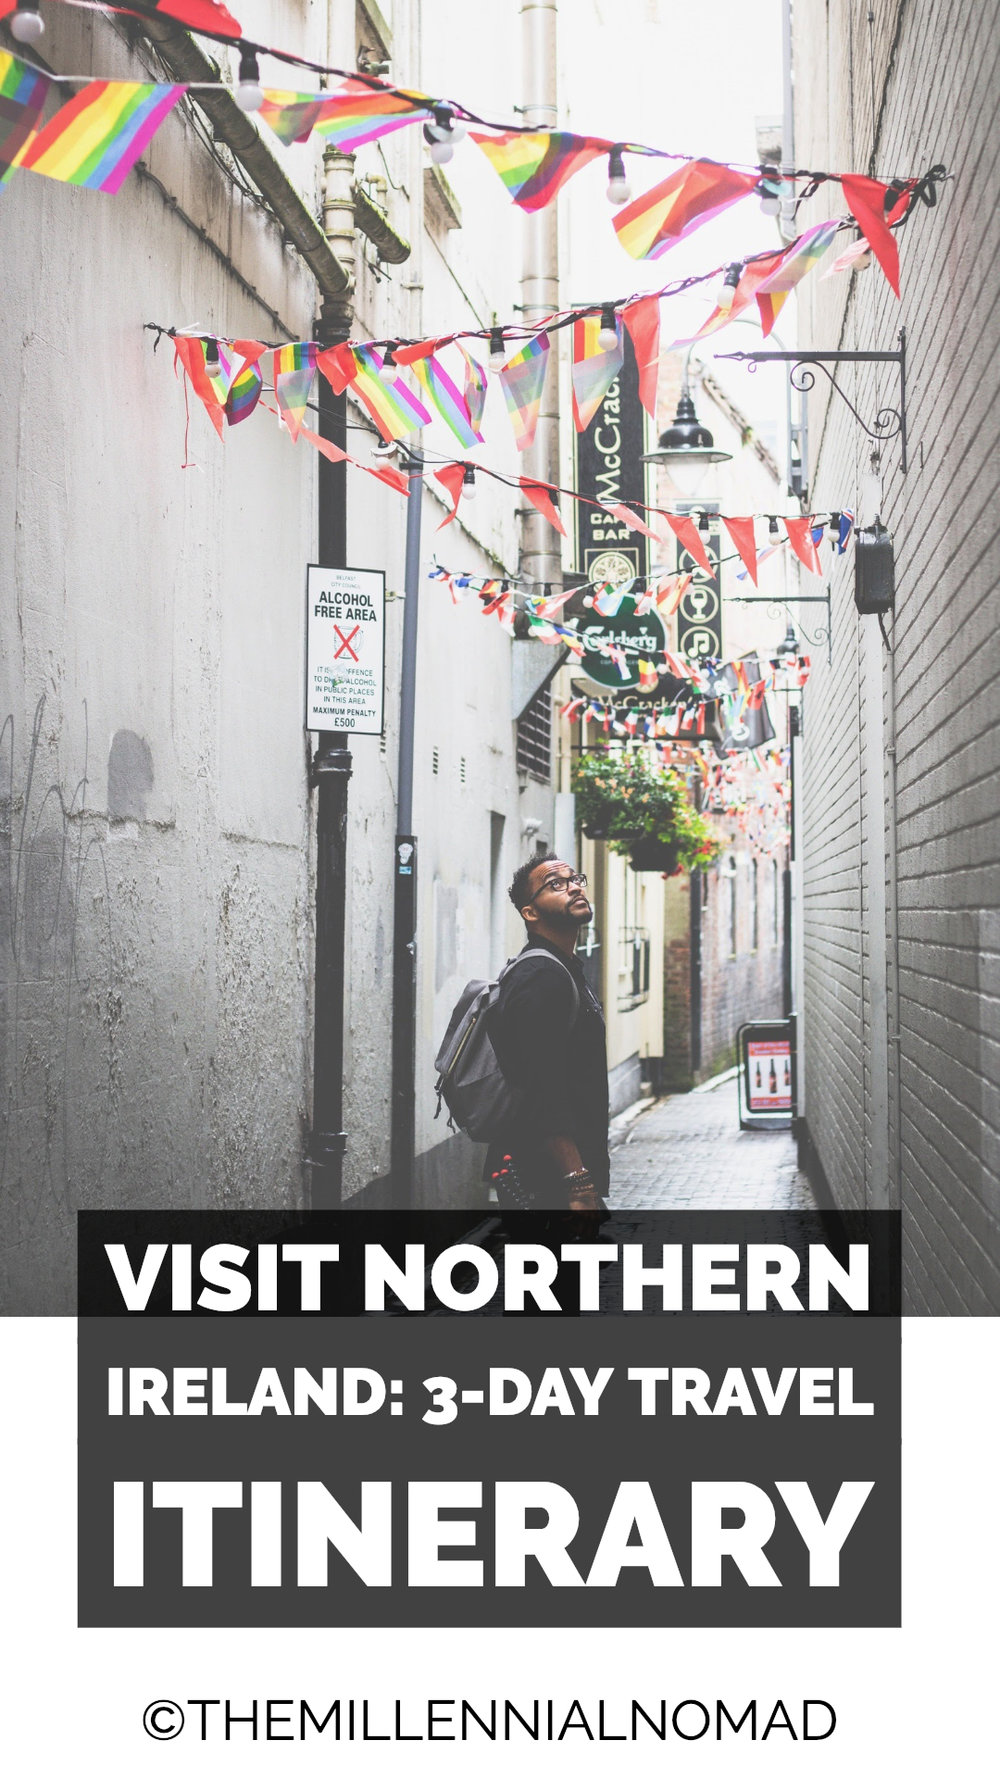 visit northern ireland: 3 day travel itinerary